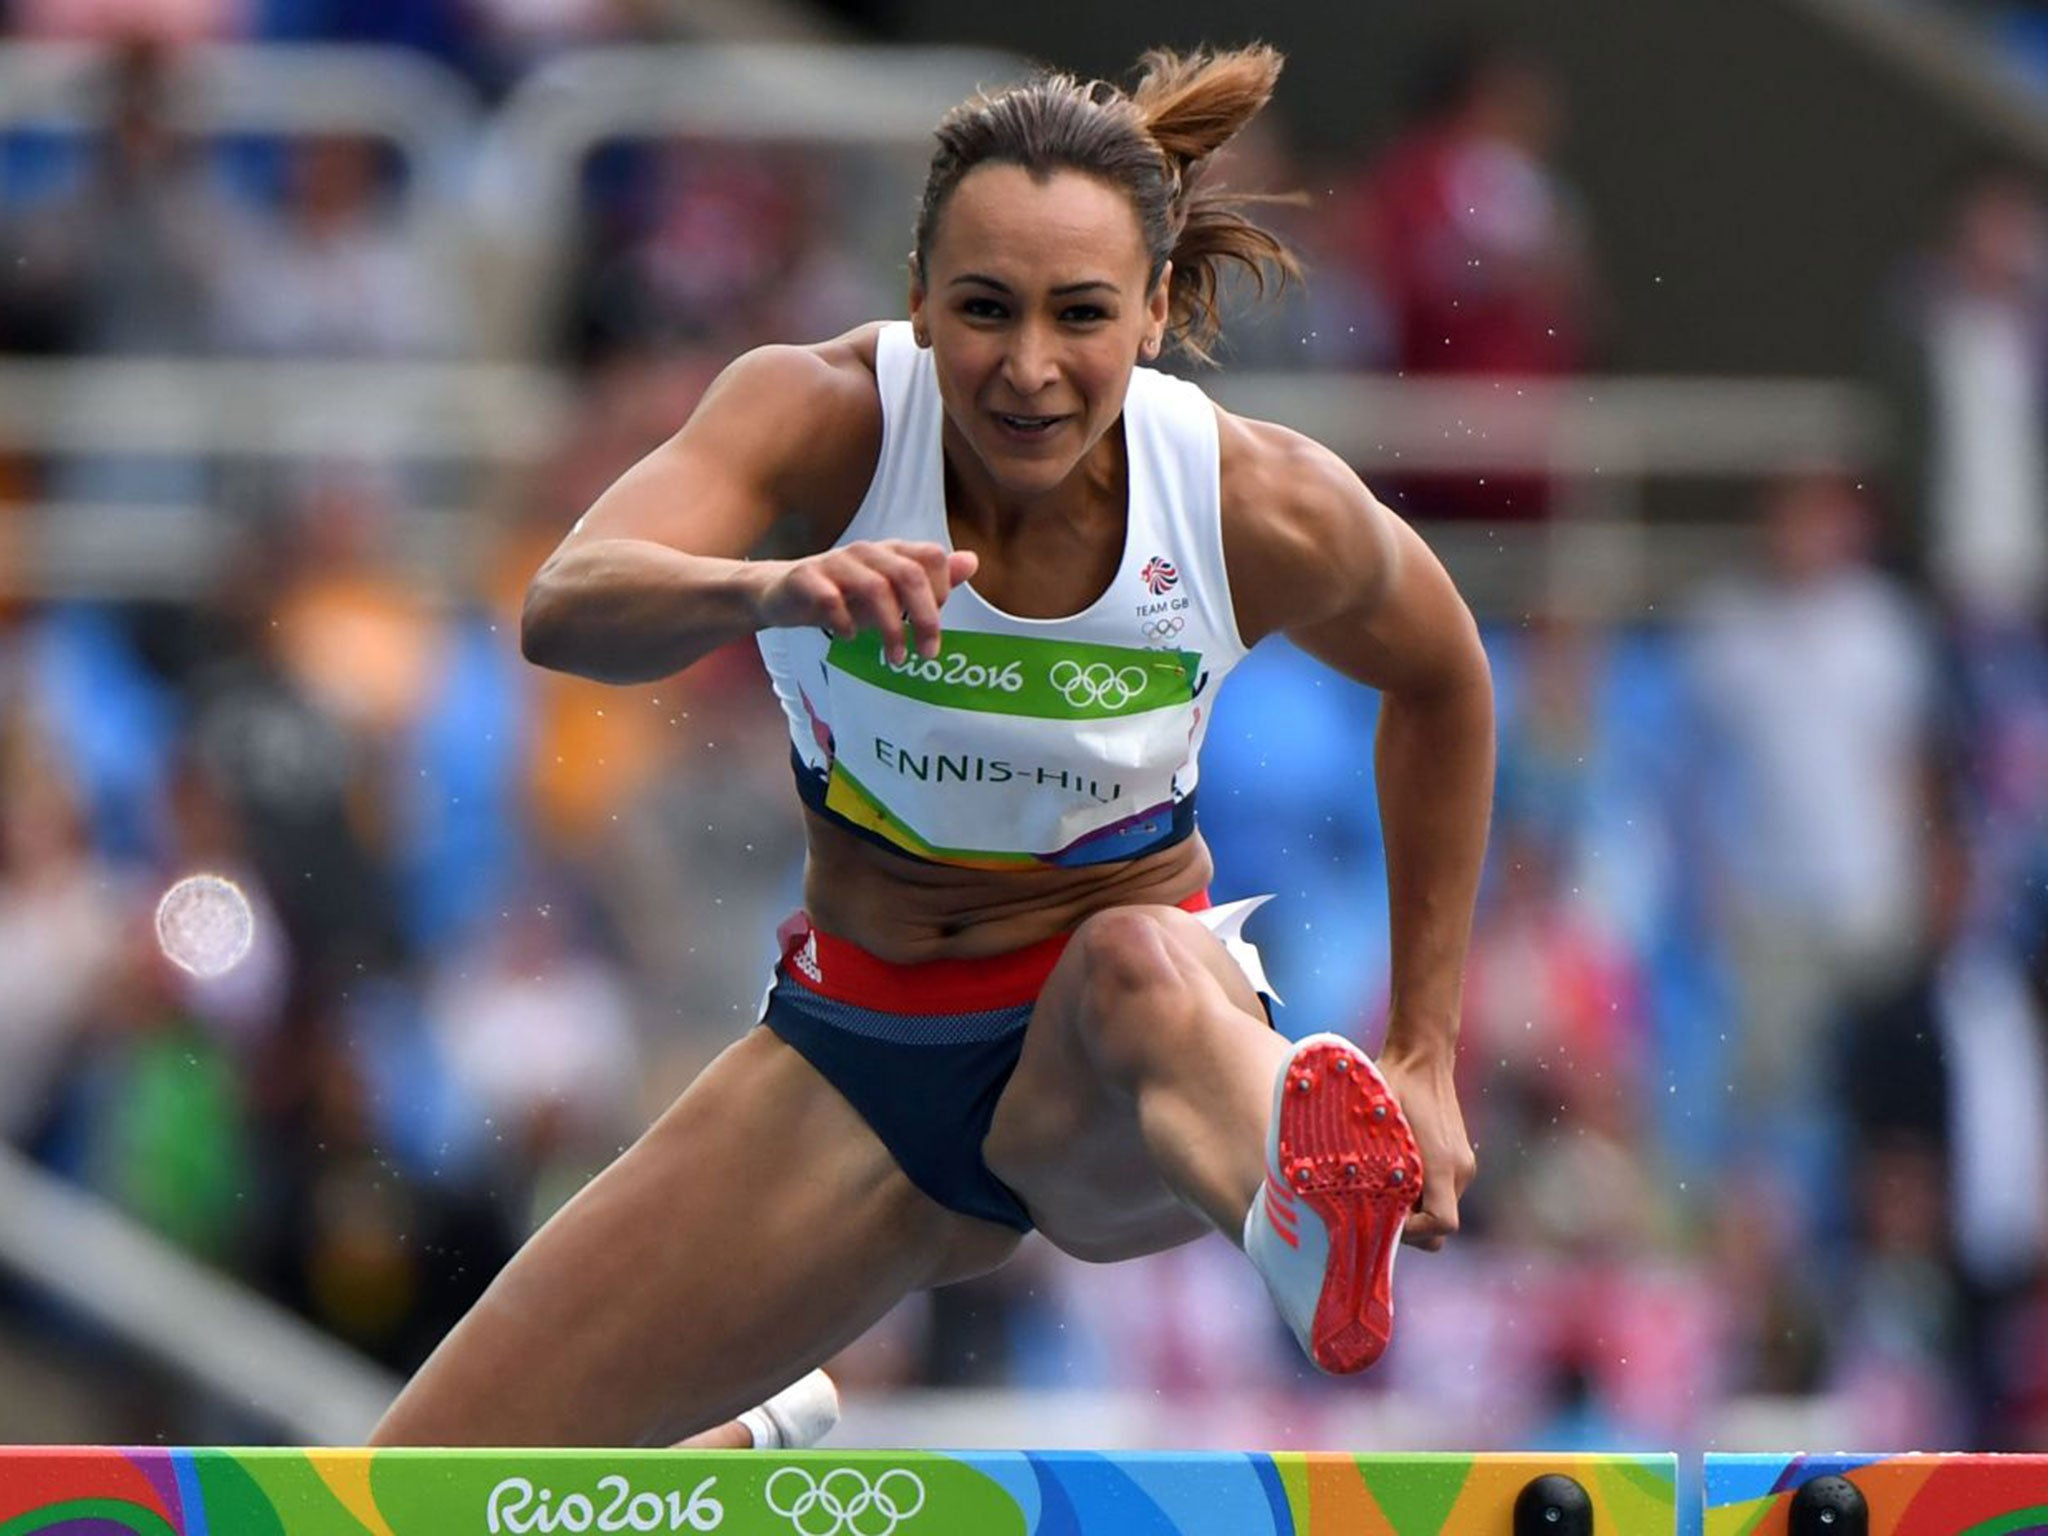 Rio 2016 live: 'Super Saturday' on day eight of the Olympics as Jessica Ennis-Hill, Mo Farah and Usain Bolt in action